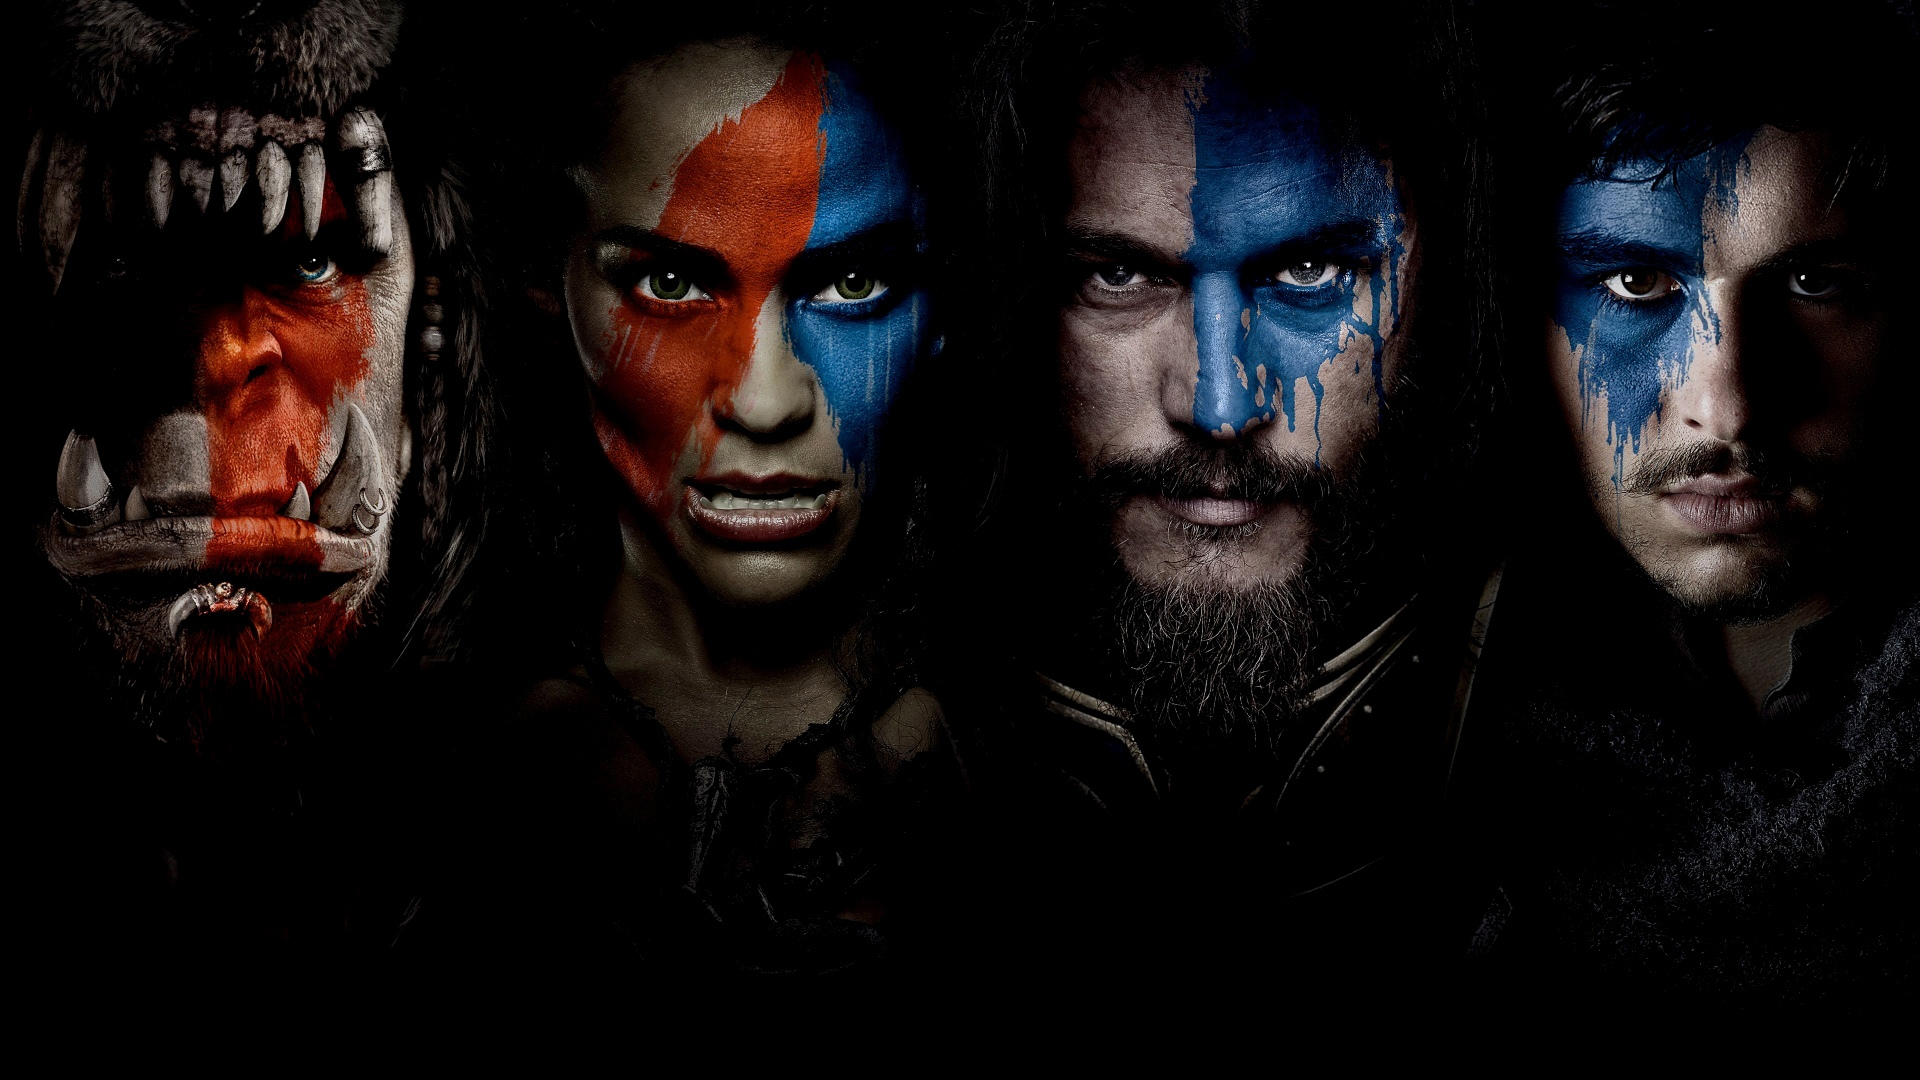 Warcraft 2016 Images Warcraft Movie Wallpaper Hd Wallpaper And